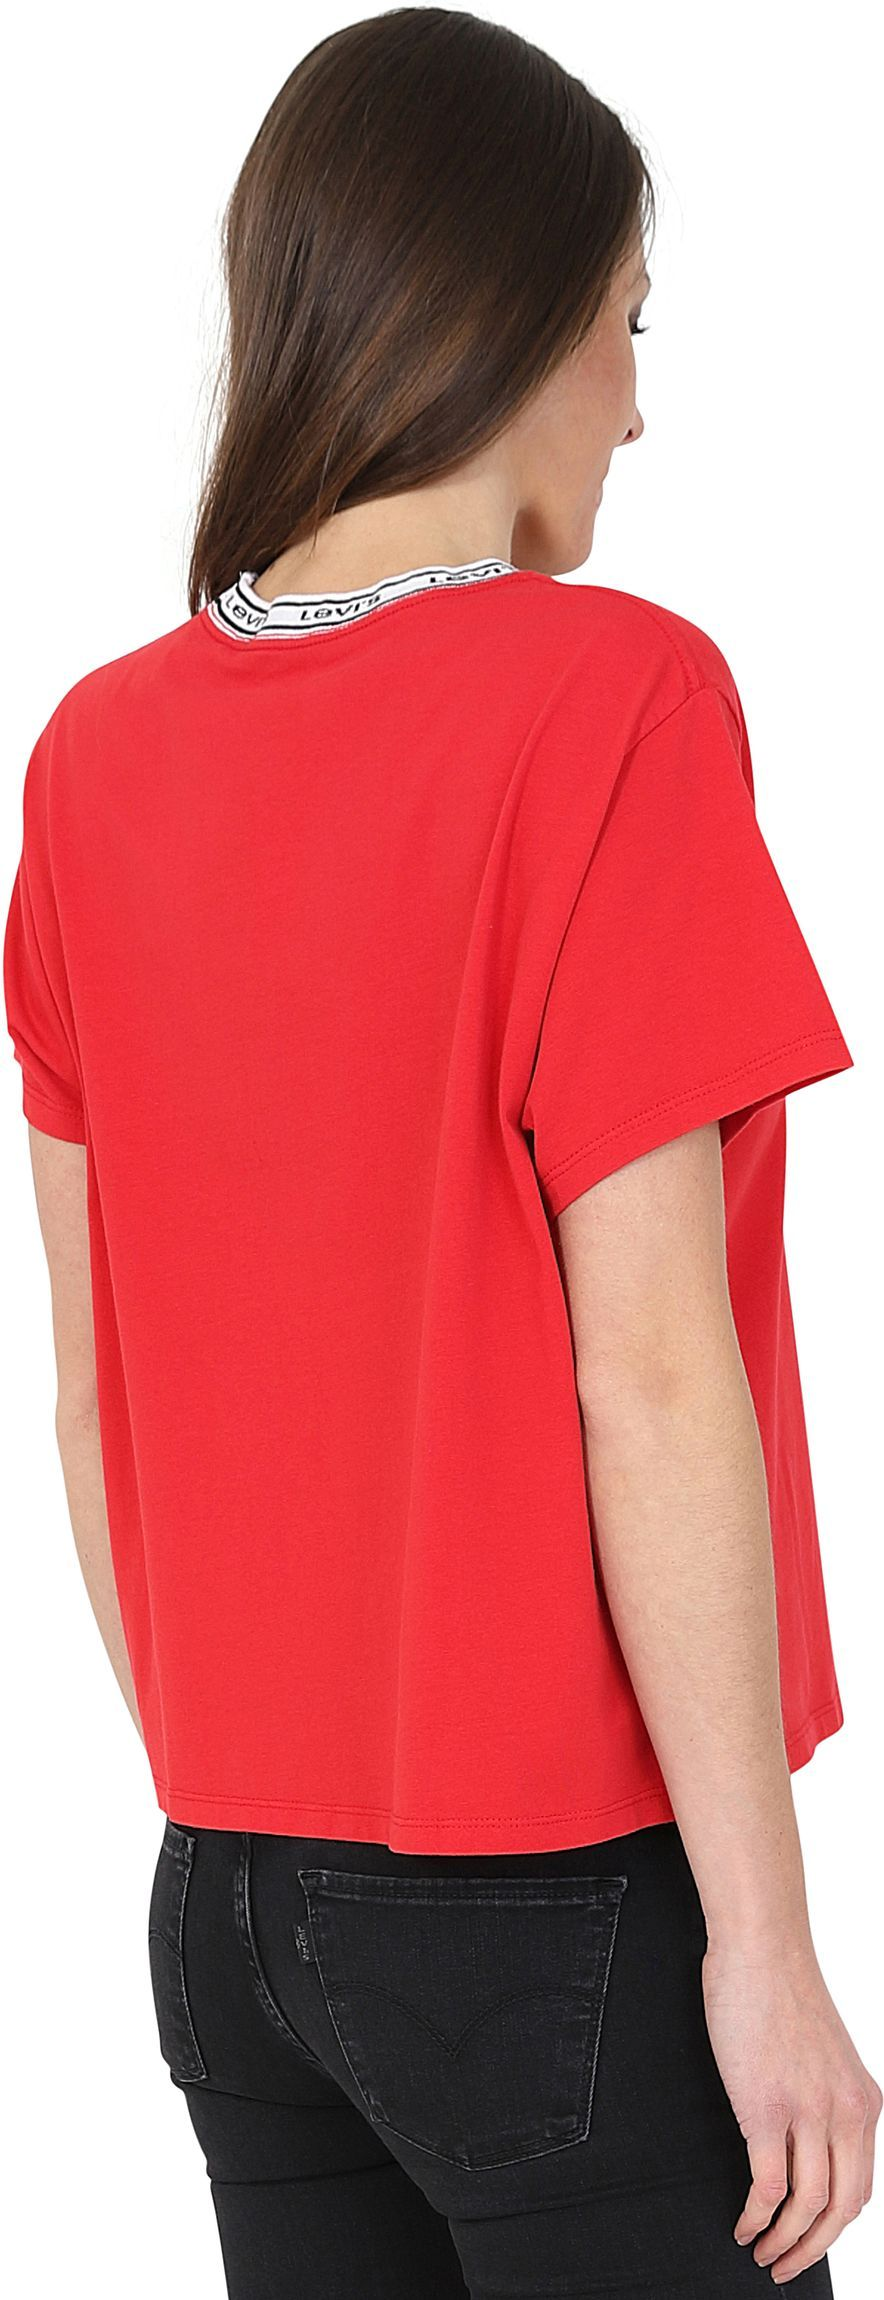 Levi-039-s-T-Shirts-amp-Tops-Women-039-s-Assorted-Fit-Styles thumbnail 3